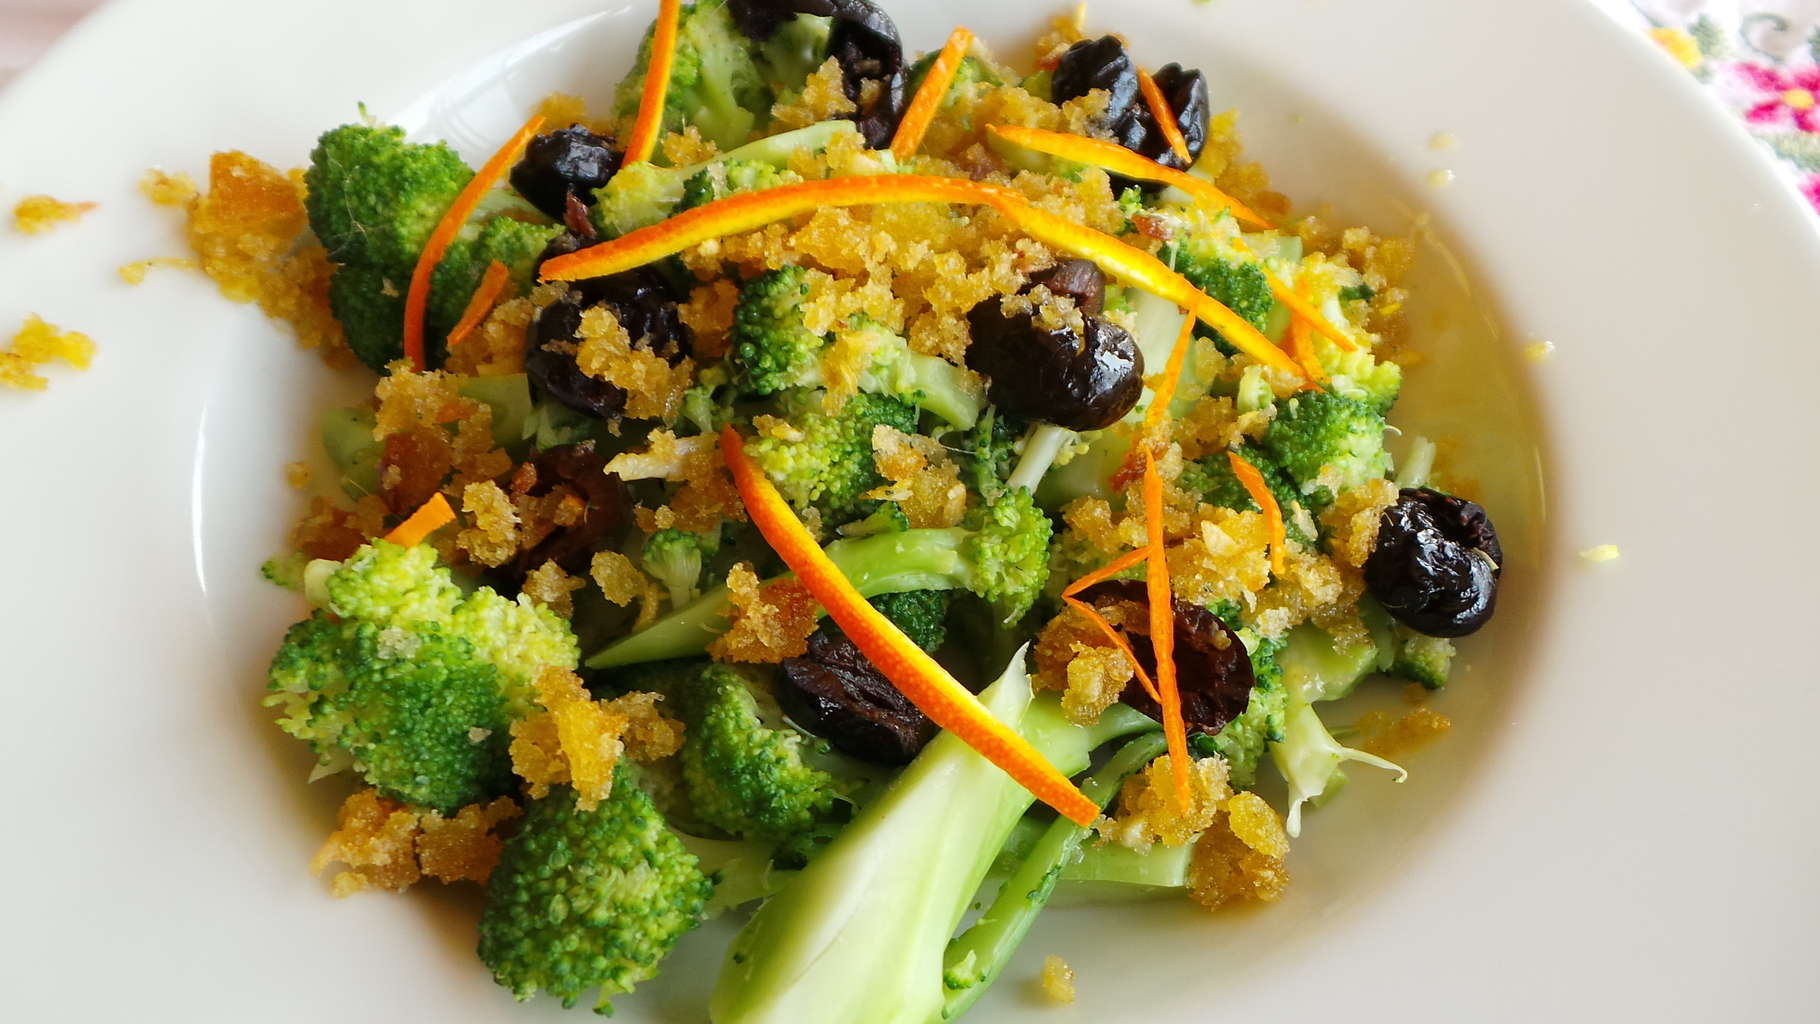 Broccoli with Golden Breadcrumbs, Oil-cured Olives, and Orange Zest (CAWCOM) (2)